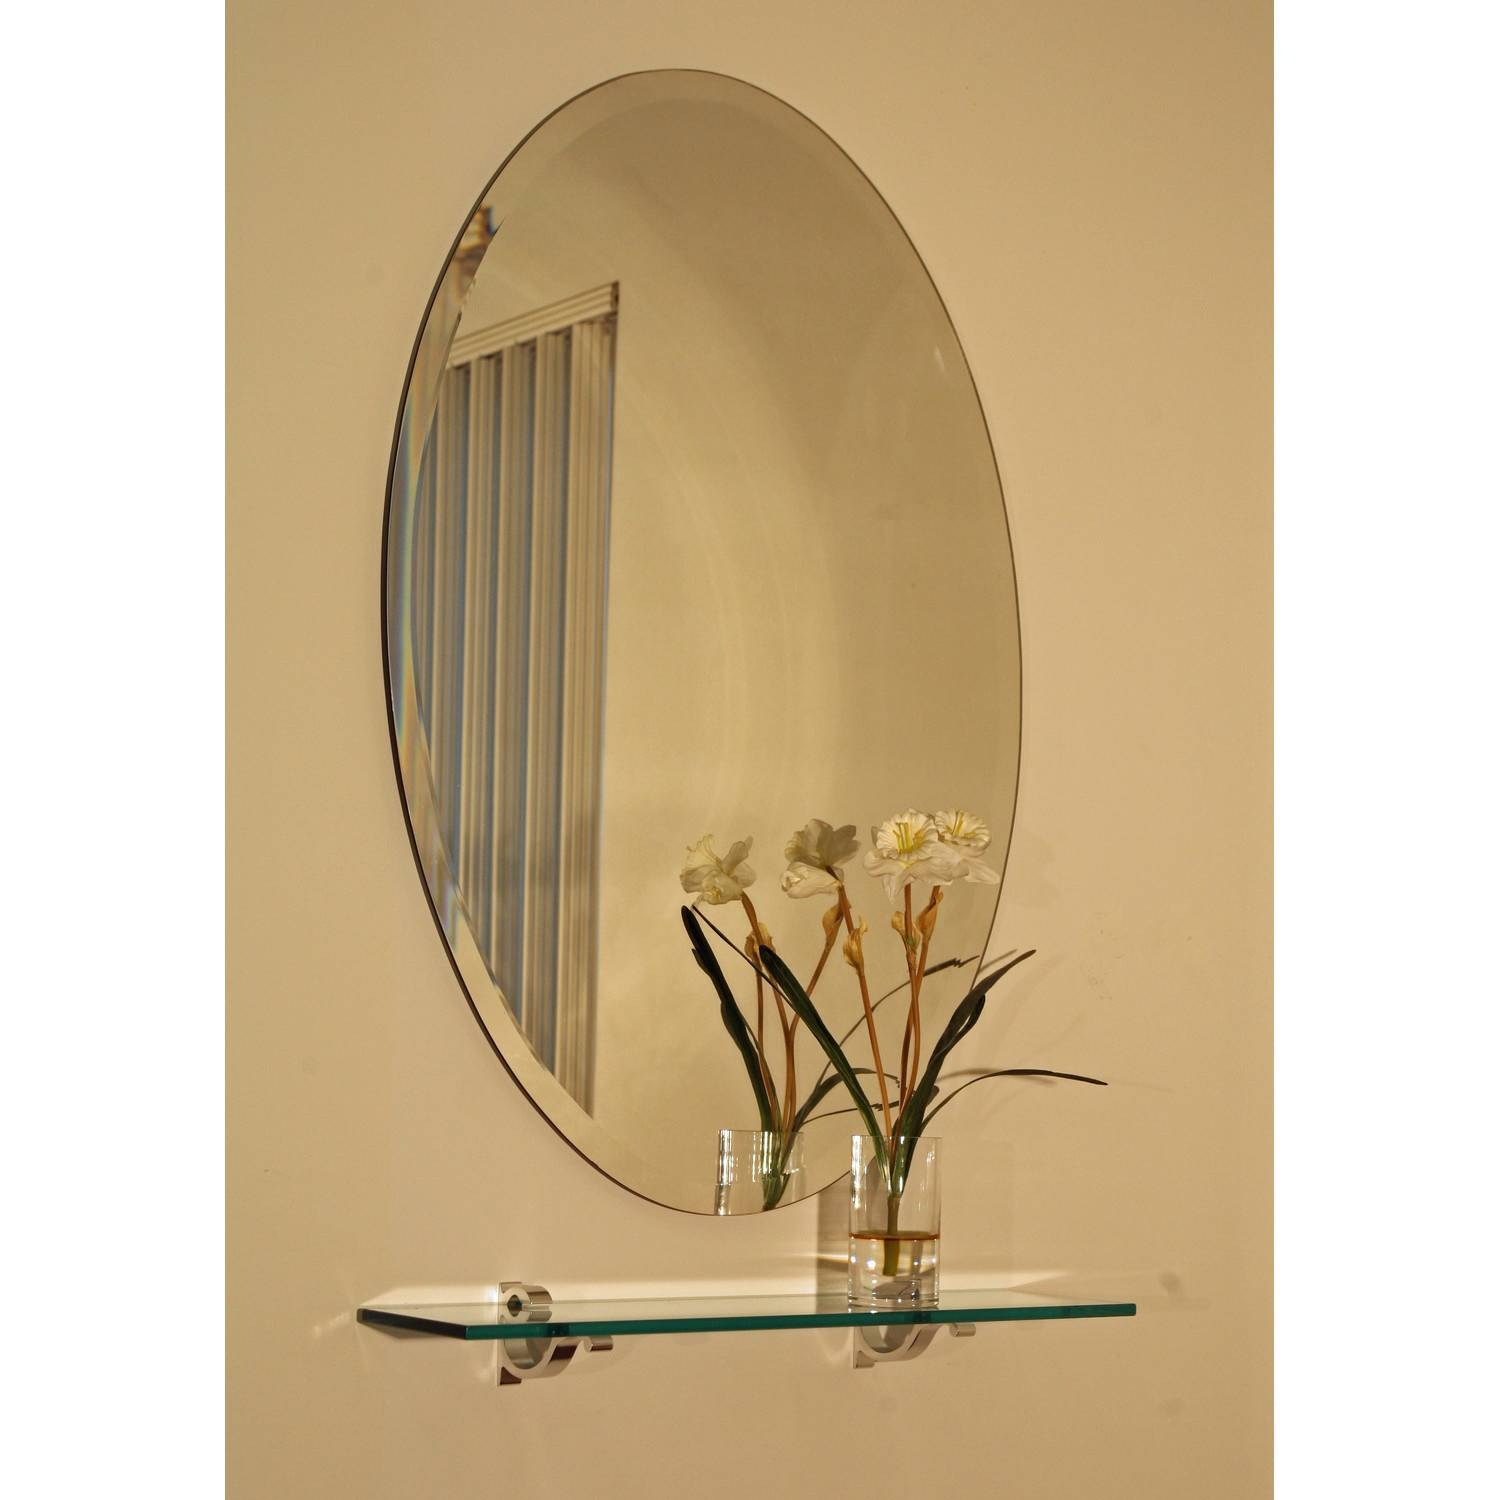 Regency 24 X 36 Oval Beveled Edge Mirror Spancraft Wall Mirror with regard to Bevelled Oval Mirrors (Image 9 of 15)